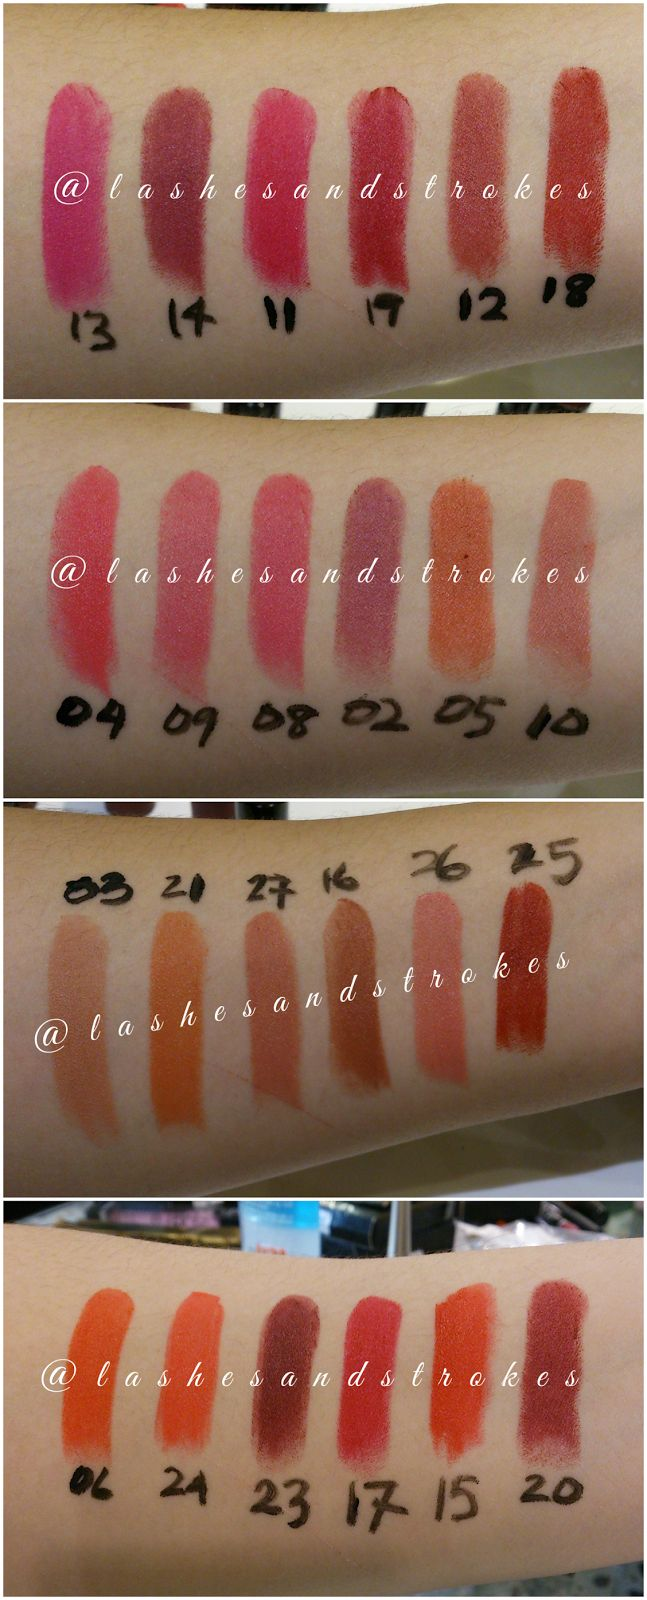 golden rose velvet matte swatches